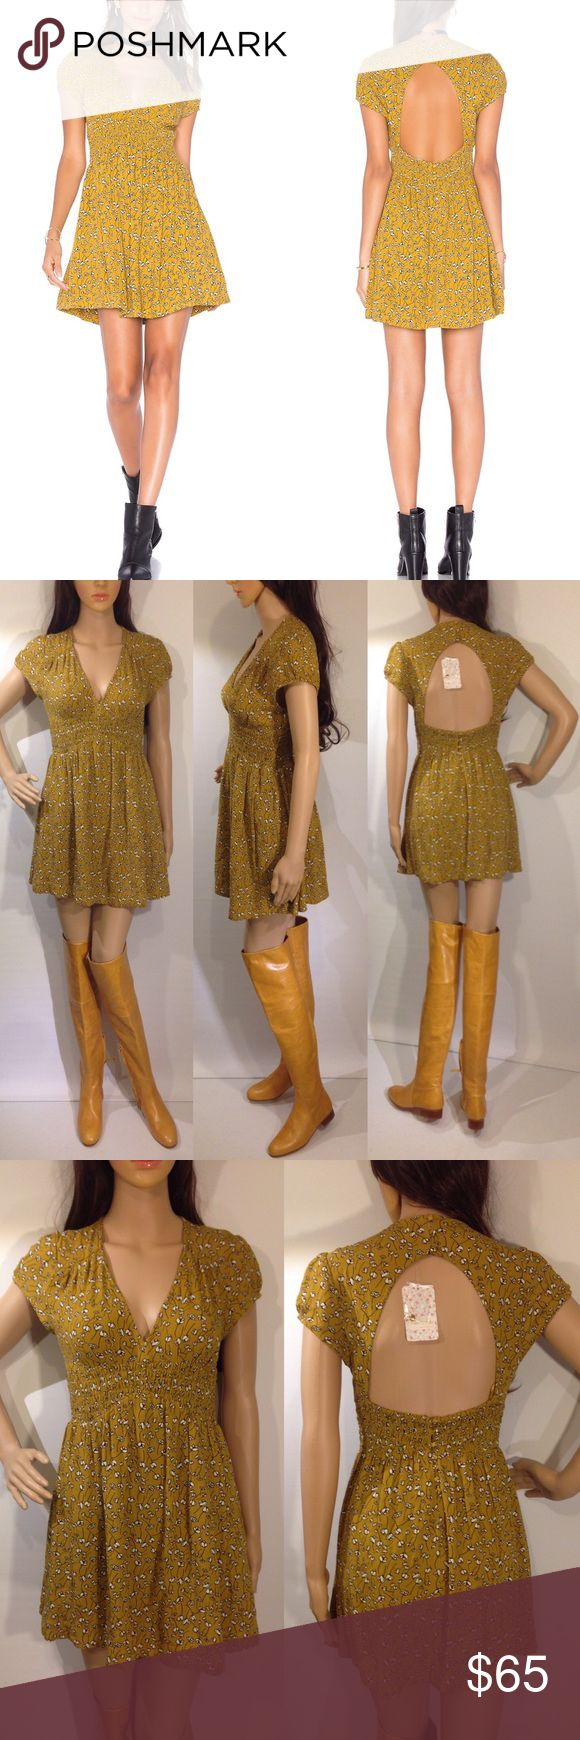 "📛SOLD📛NO LONGER AVAILABLE Free people pretty baby dress. New with tags. Wide panel of smocked elastic defines the waist. Buttons secure the cut out back, and cinched cap sleeves. On seam hip pockets. Lined skirt. 100% rayon. Length 30"" approx. Mustard color Free People Dresses Mini"